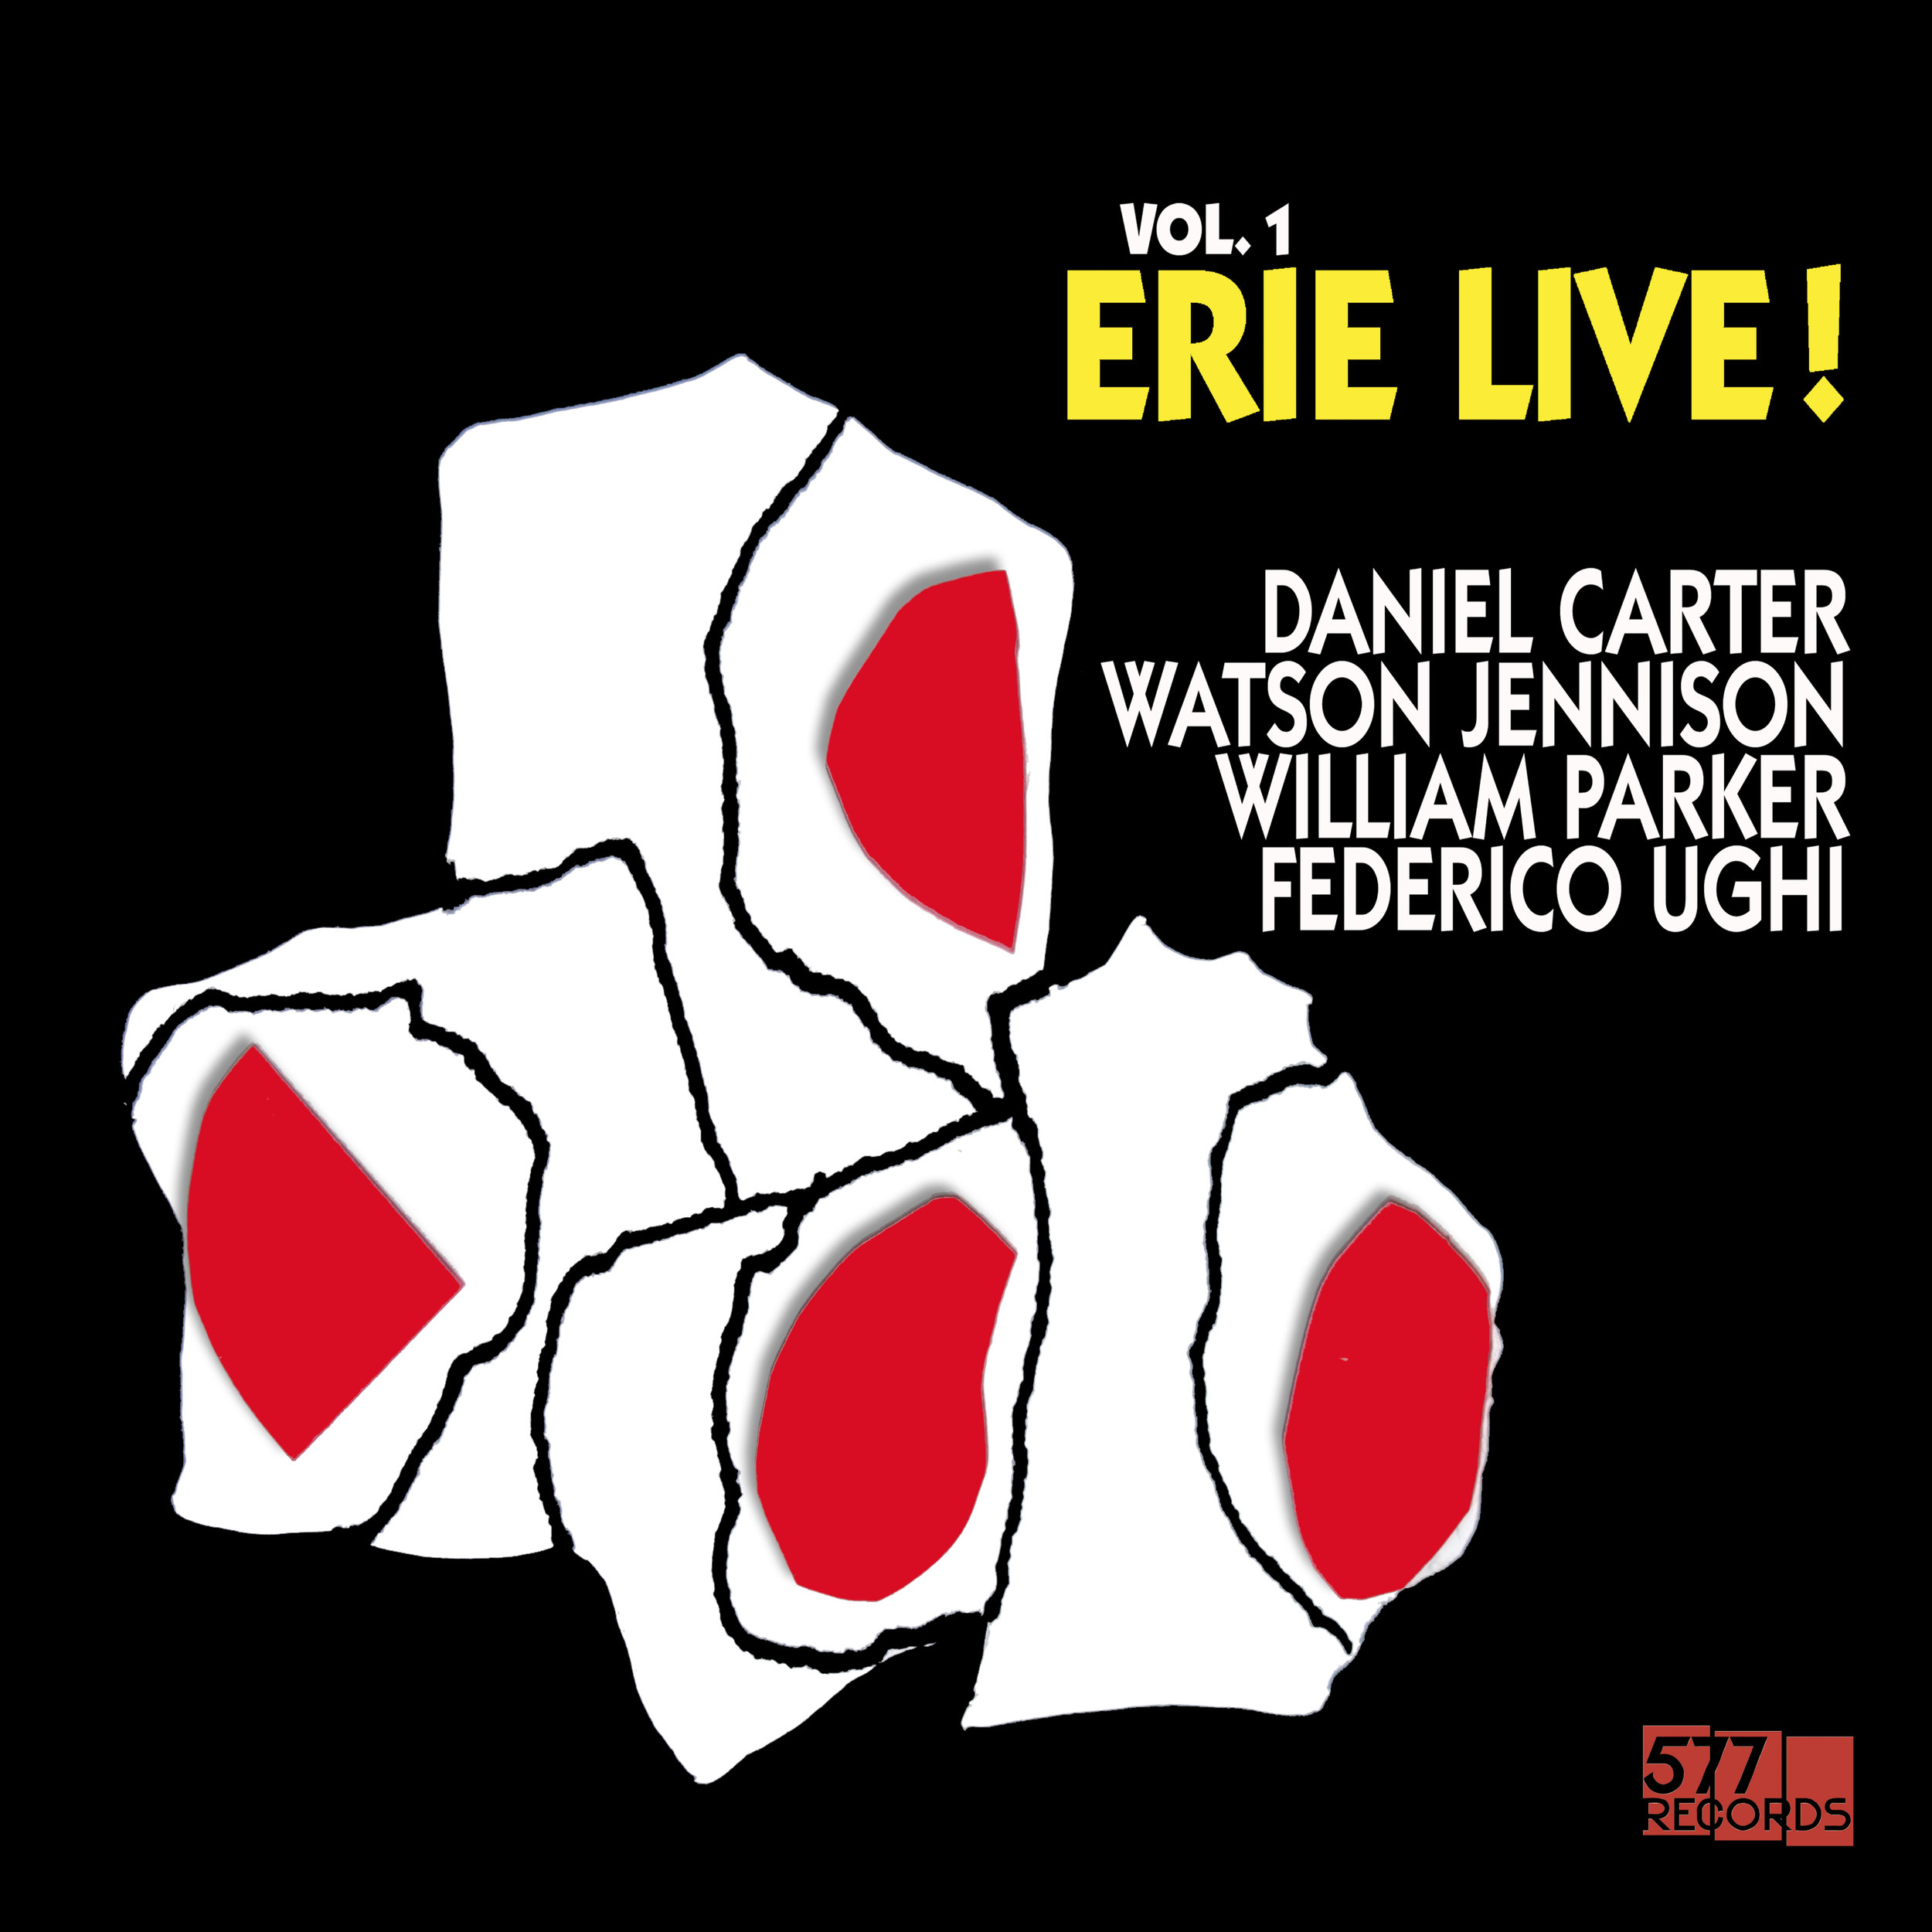 DANIEL CARTER, WATSON JENNISON, WILLIAM PARKER, FEDERICO UGHI LIVE! VOL. 1 - LP MASTER EDITION